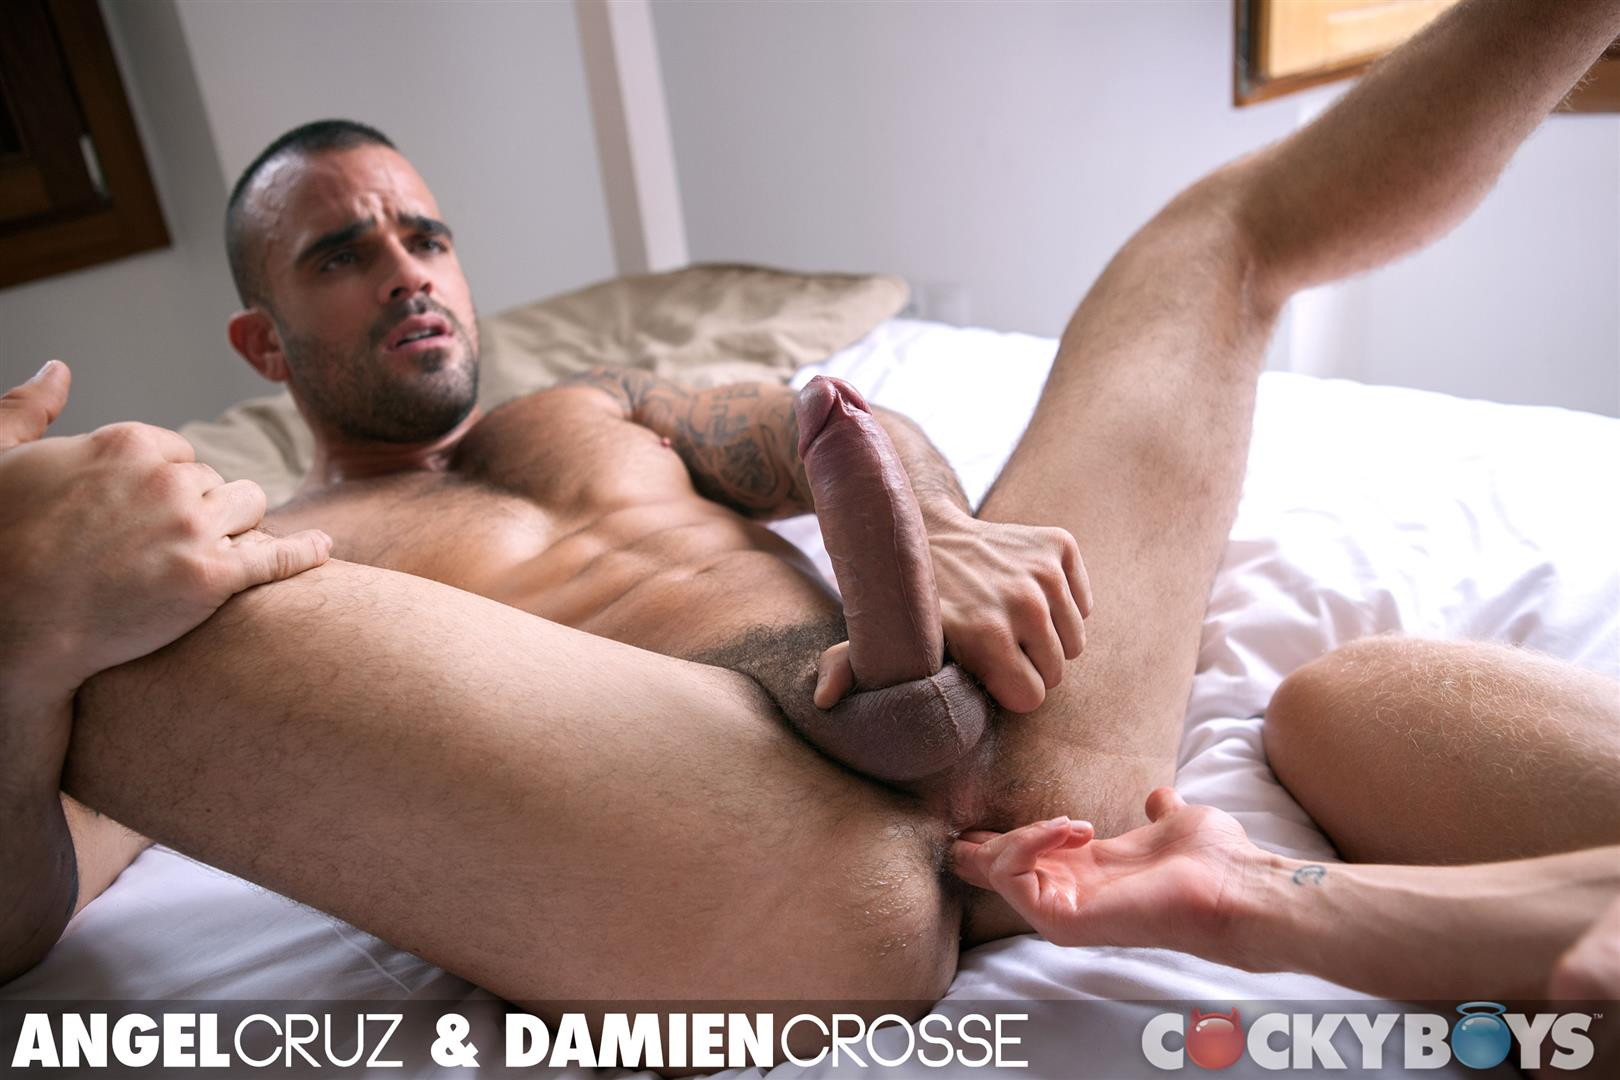 Cockyboys-Angel-Cruz-and-Damien-Cross-Big-Uncut-Cocks-Fucking-Amateur-Gay-Porn-35 Angel Cruz and Damien Cross Flip Fucking With Their Big Uncut Cocks